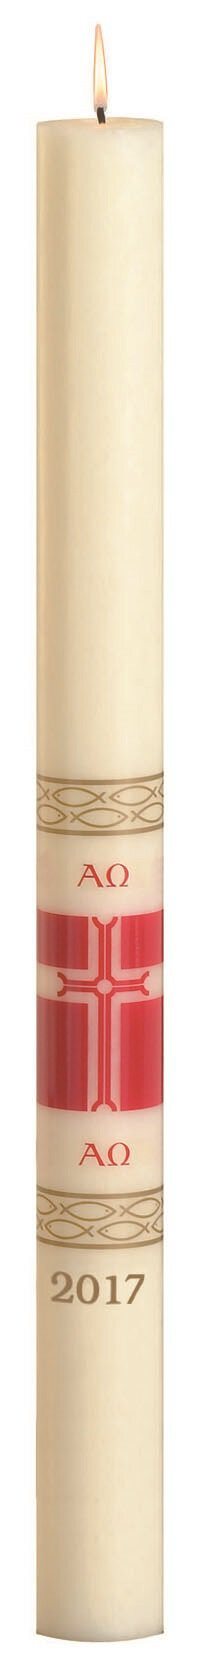 No 4 Special Alleluia Paschal Candle